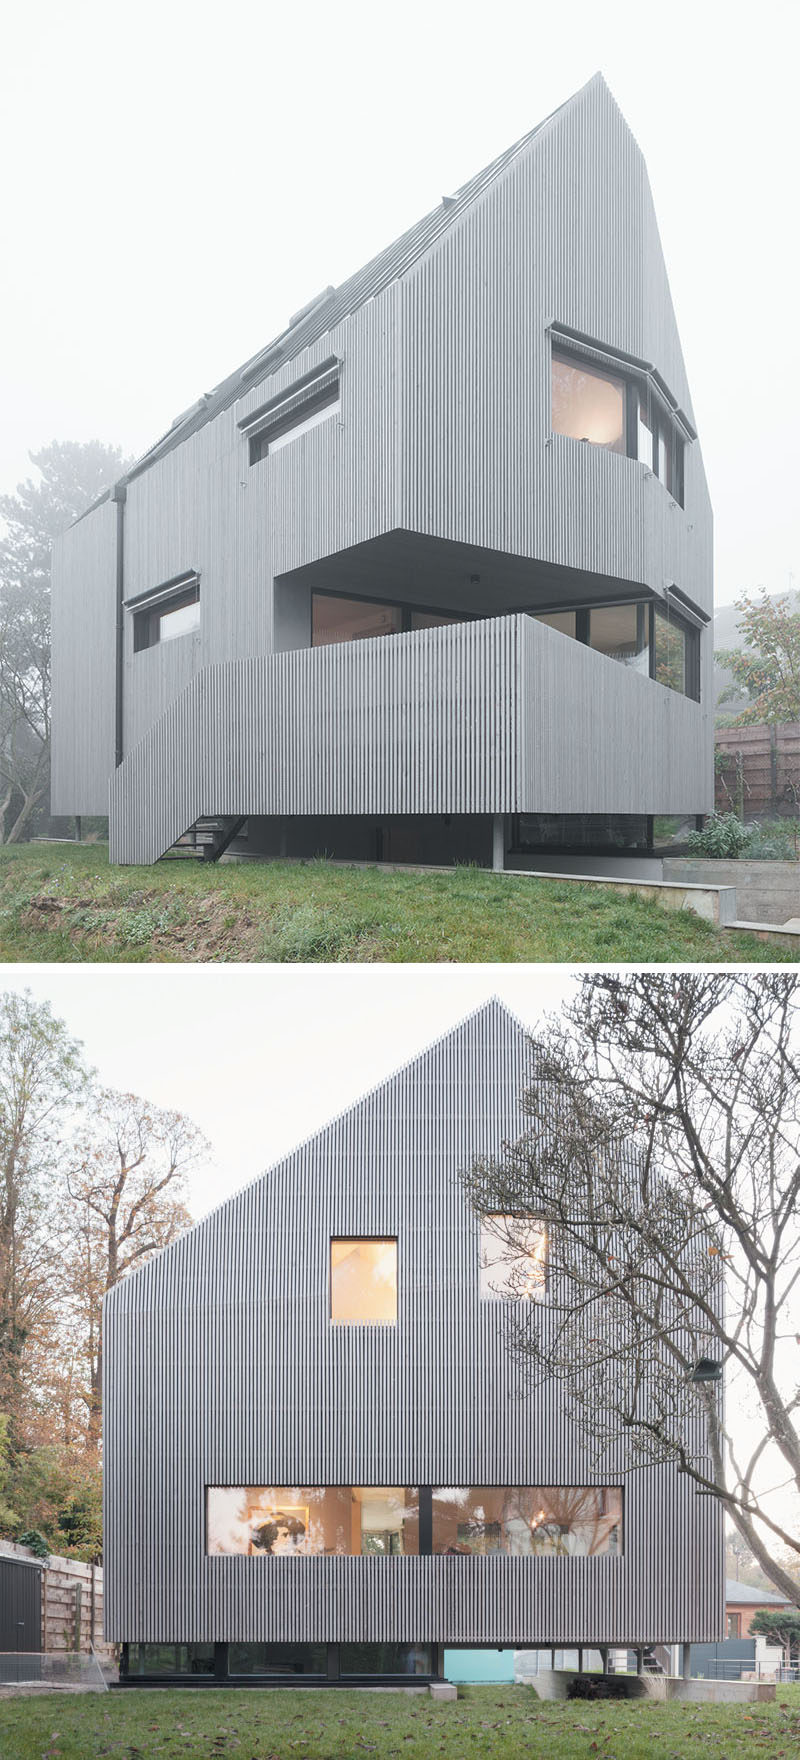 The garden and carport that run underneath this modern house in France, help to make the house appear to float above the land.